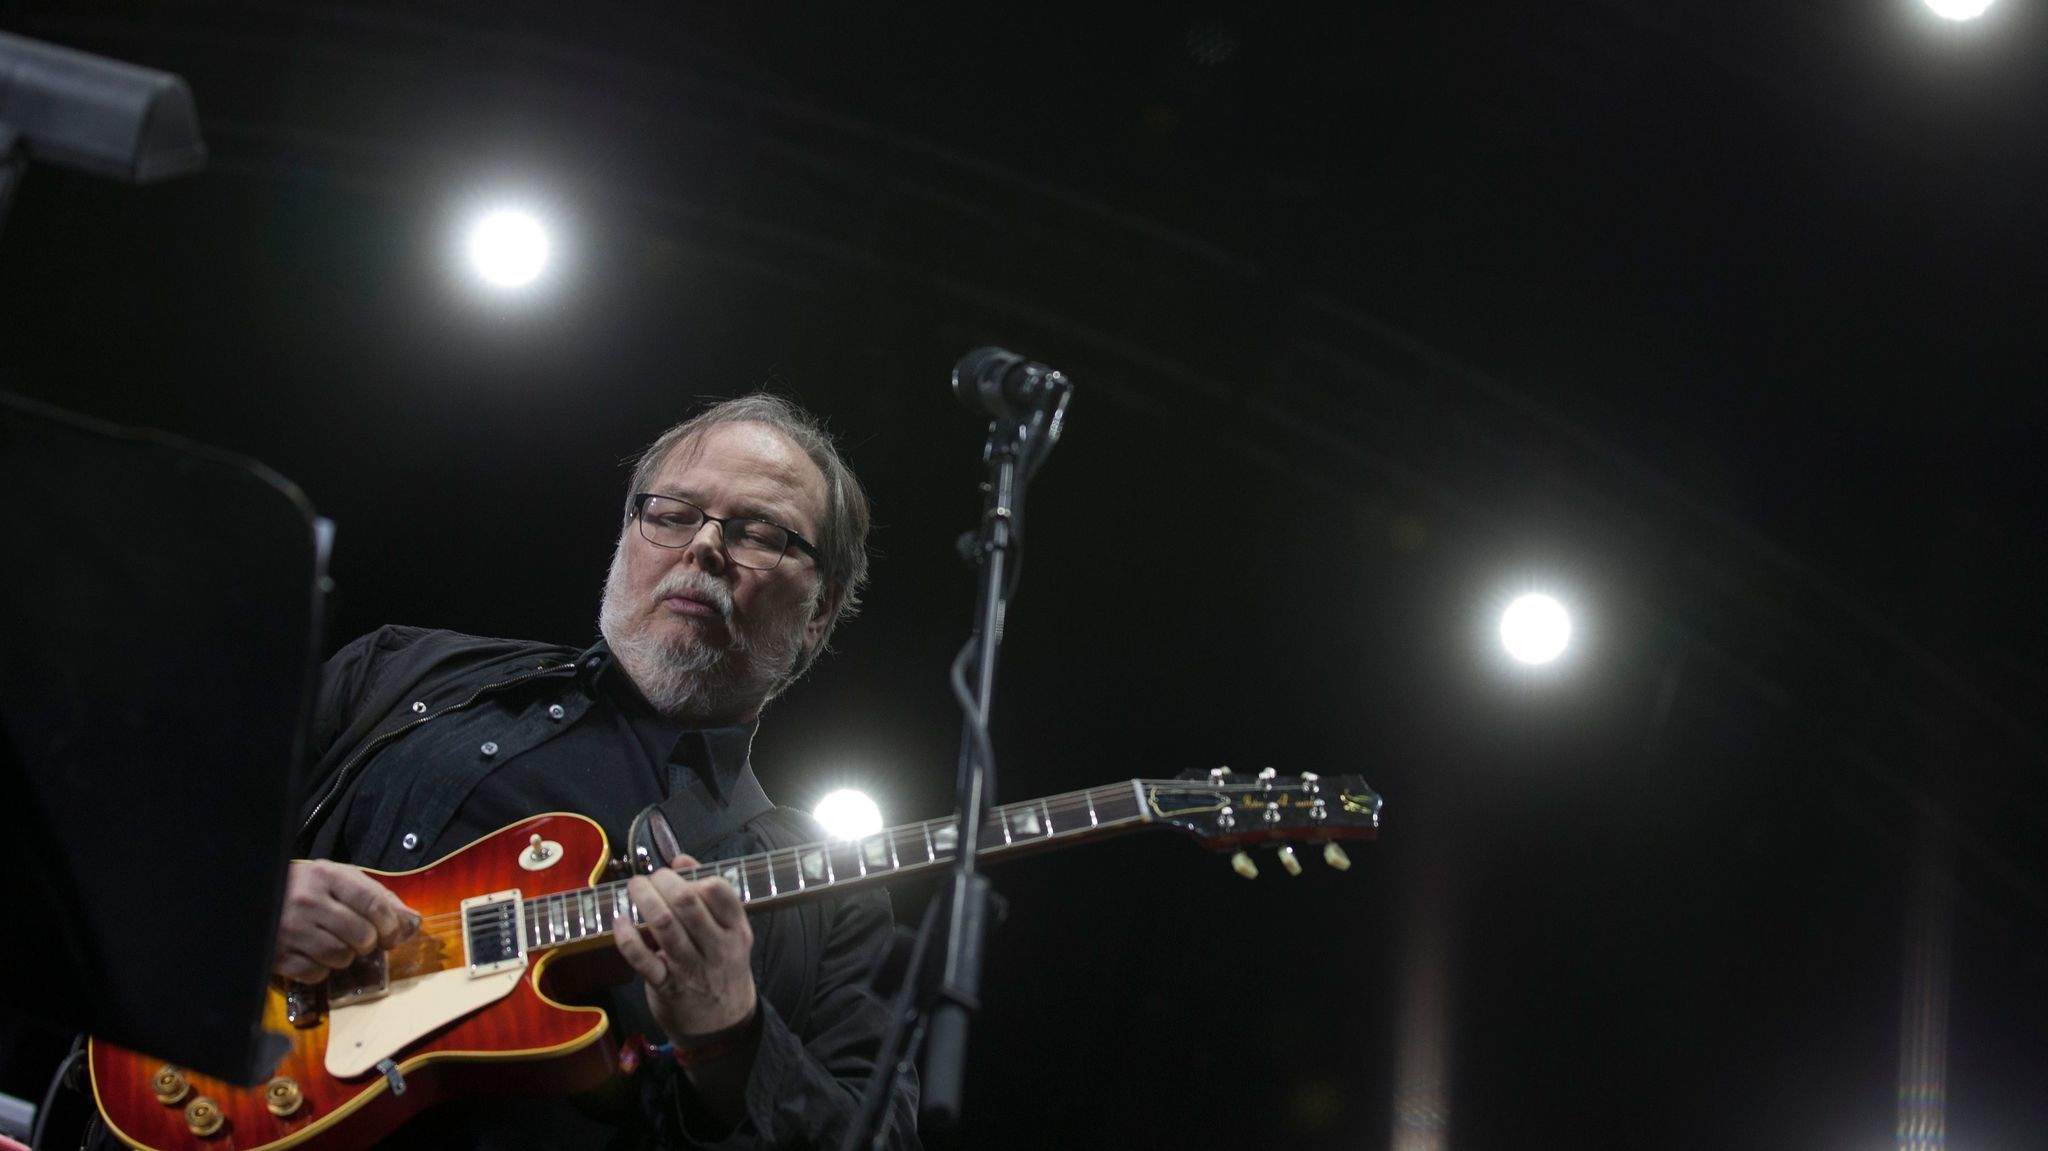 http://www.latimes.com/entertainment/la-et-ms-walter-becker-steely-dan-archive-interview-20170903-story.html